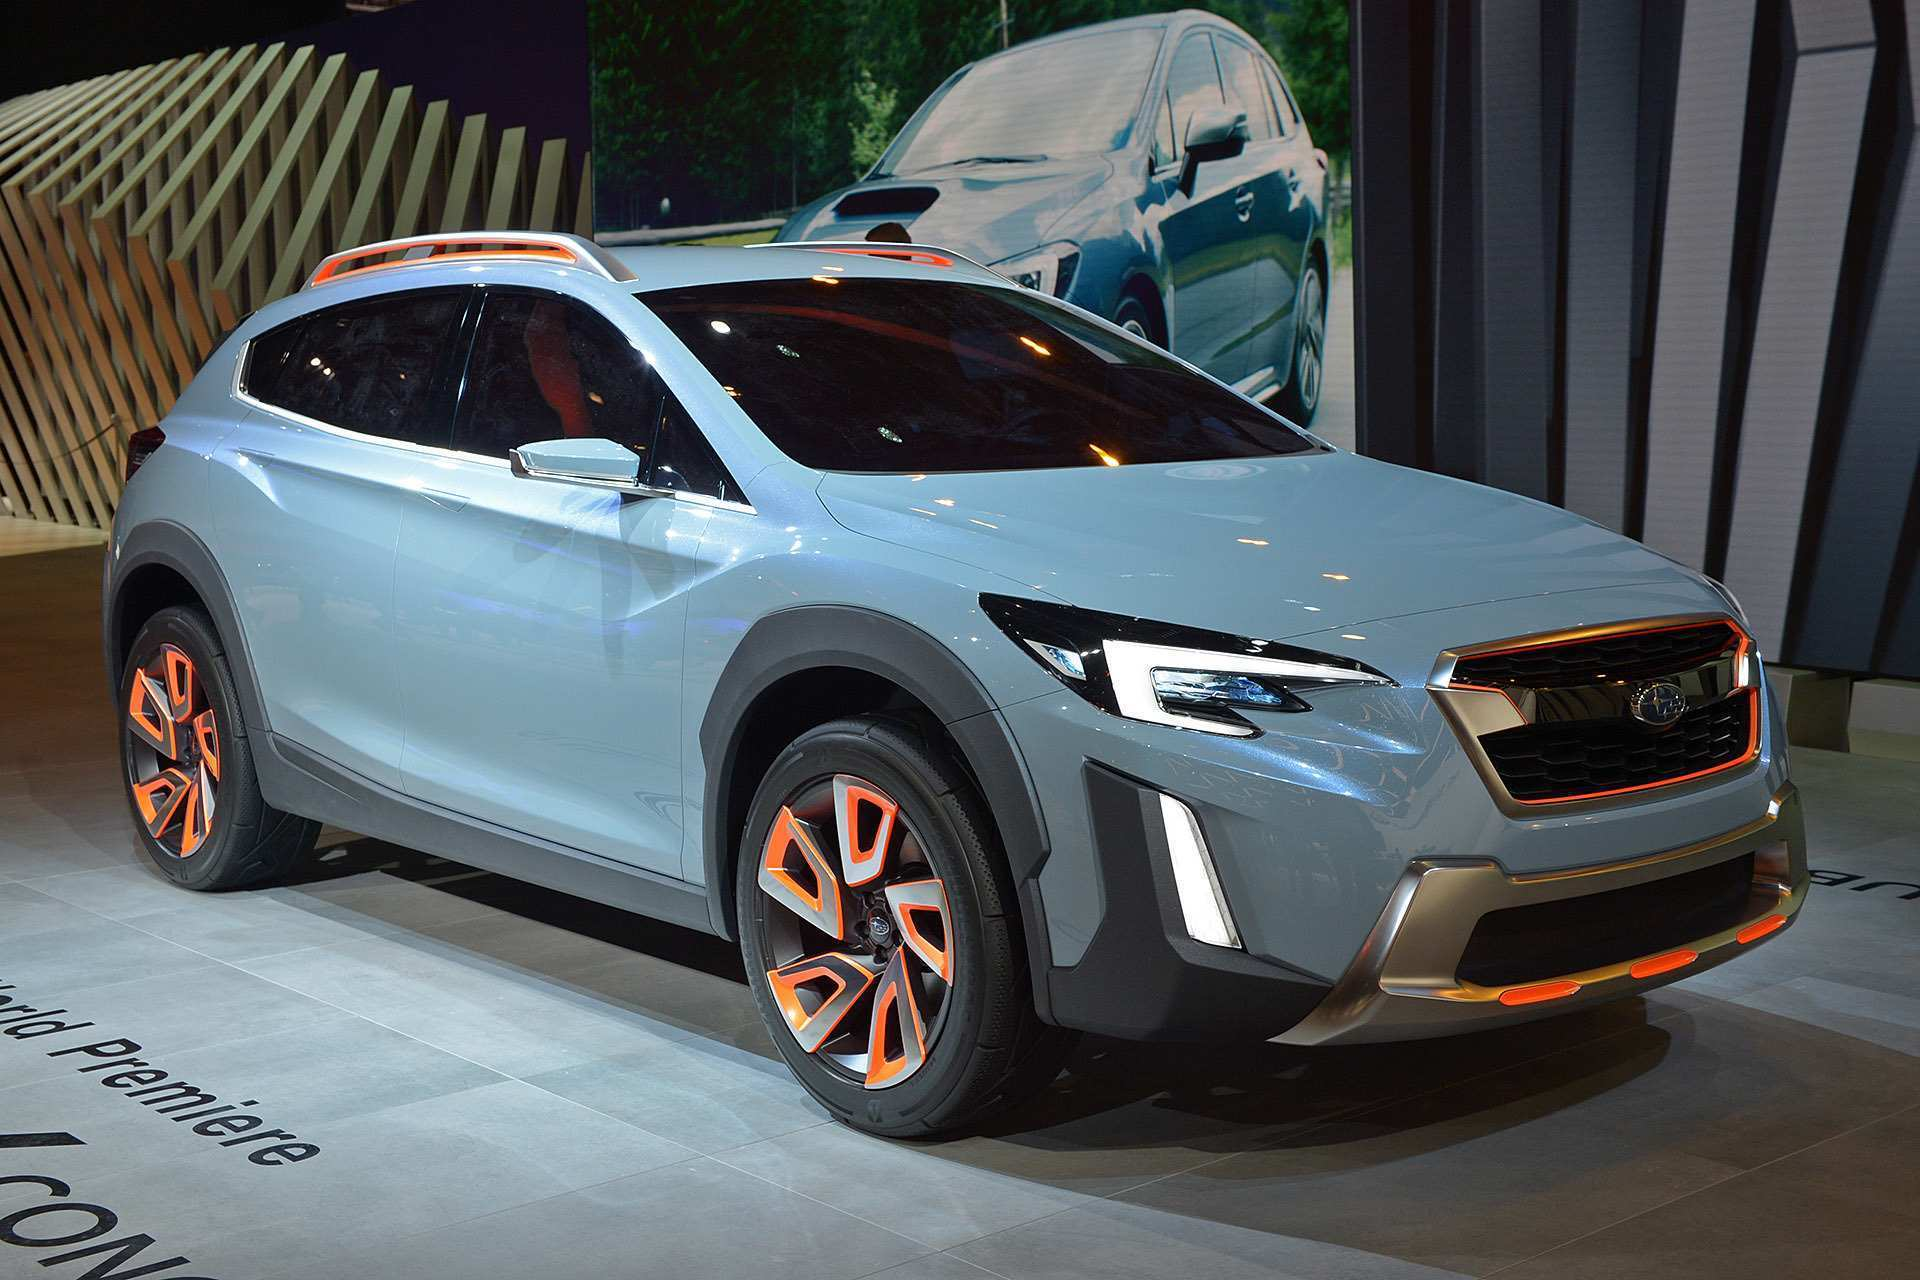 67 All New Subaru Xv Turbo 2019 Images by Subaru Xv Turbo 2019